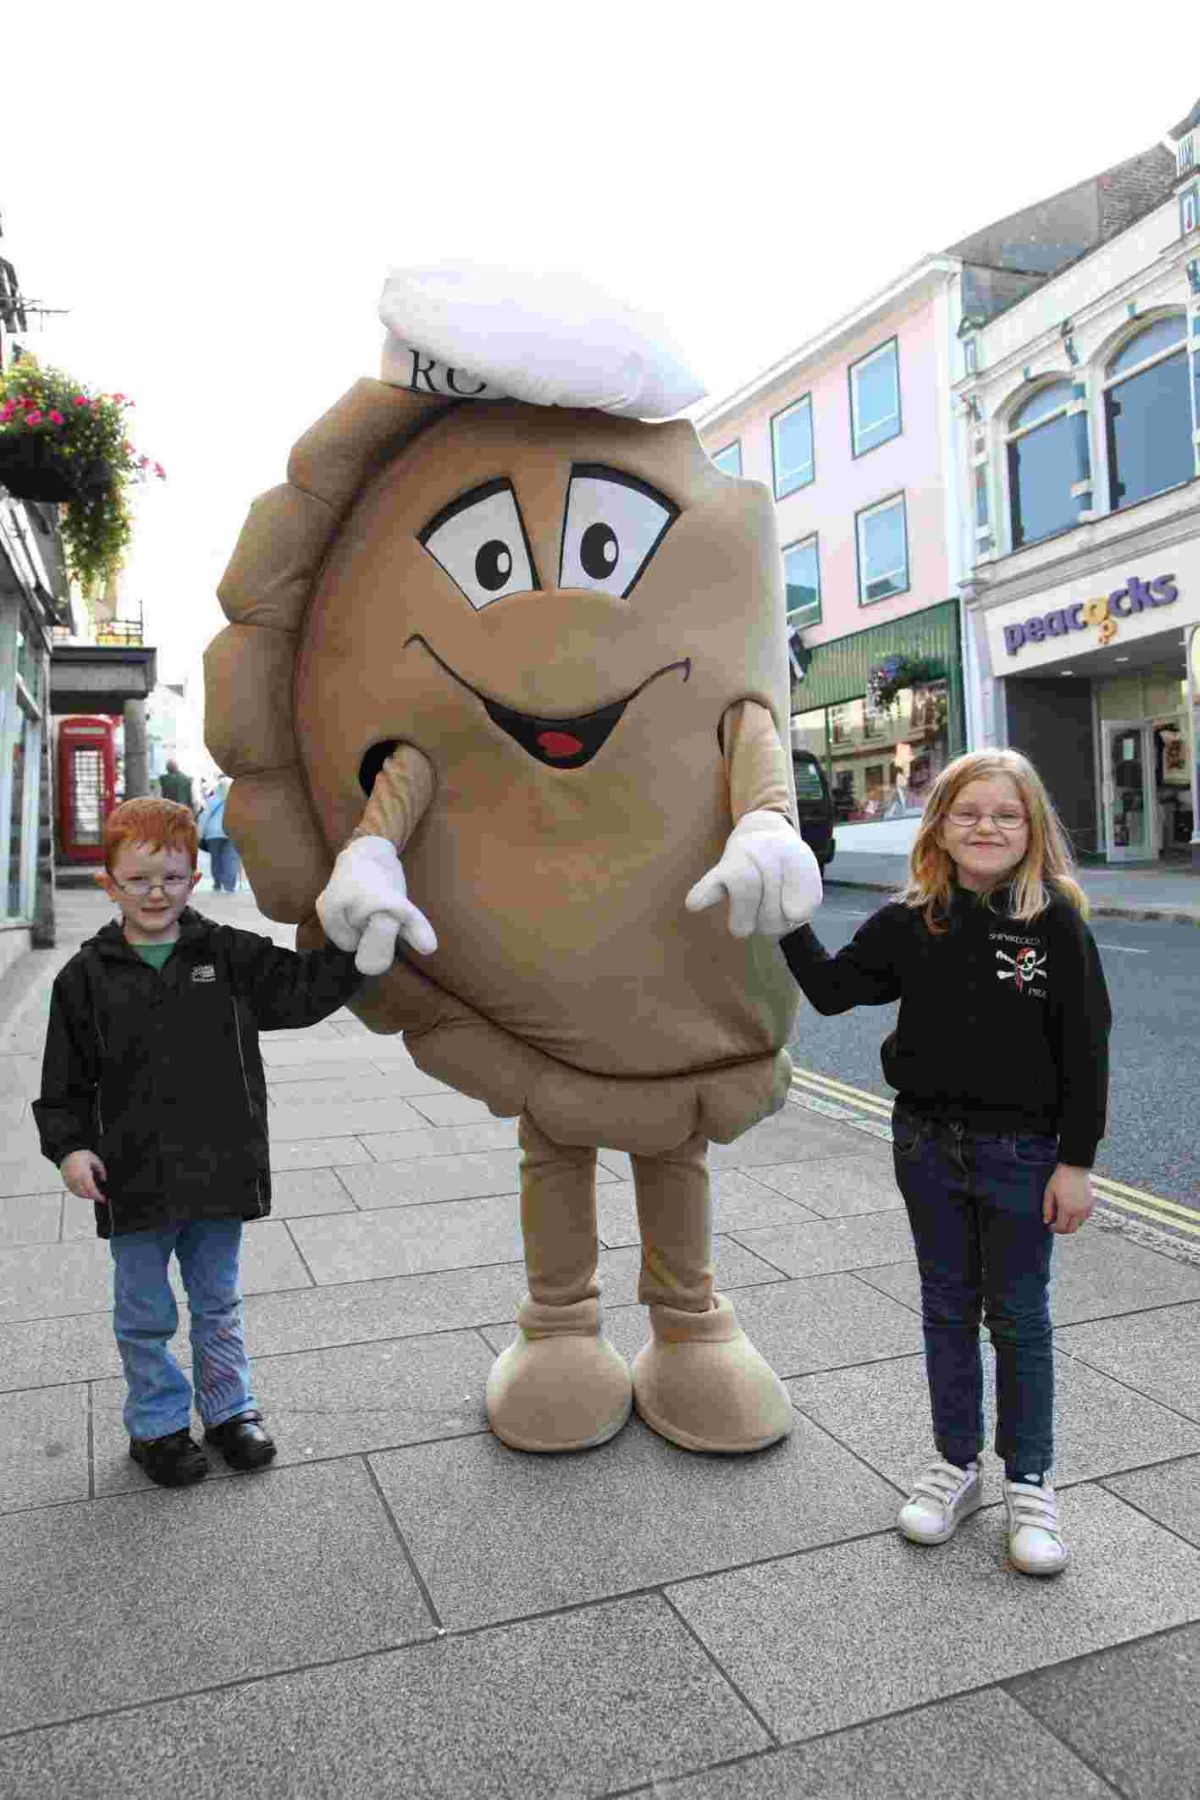 Redruth Mining and Pasty Festival: What's on the menu